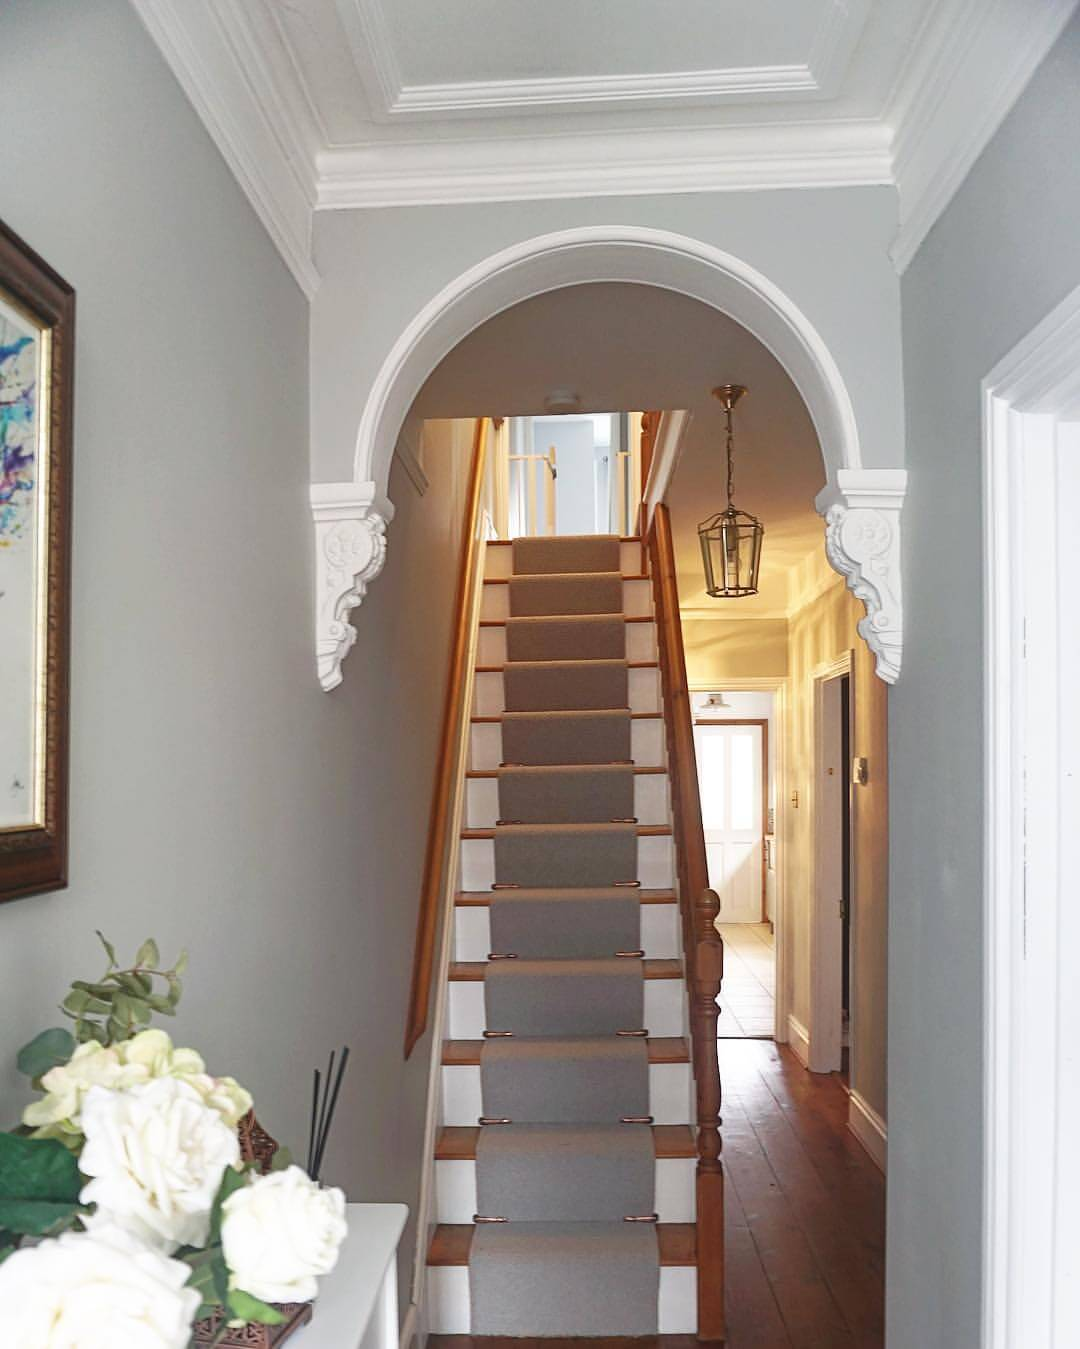 Picture Perfect with a Dimensional Stairway Arch